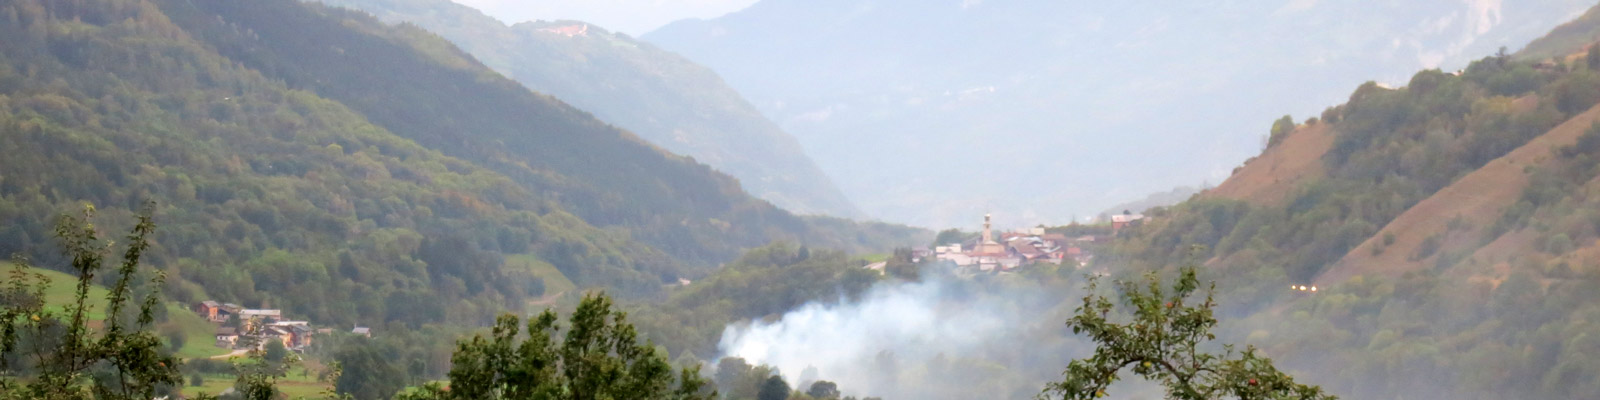 Qualité de l'air en Tarentaise